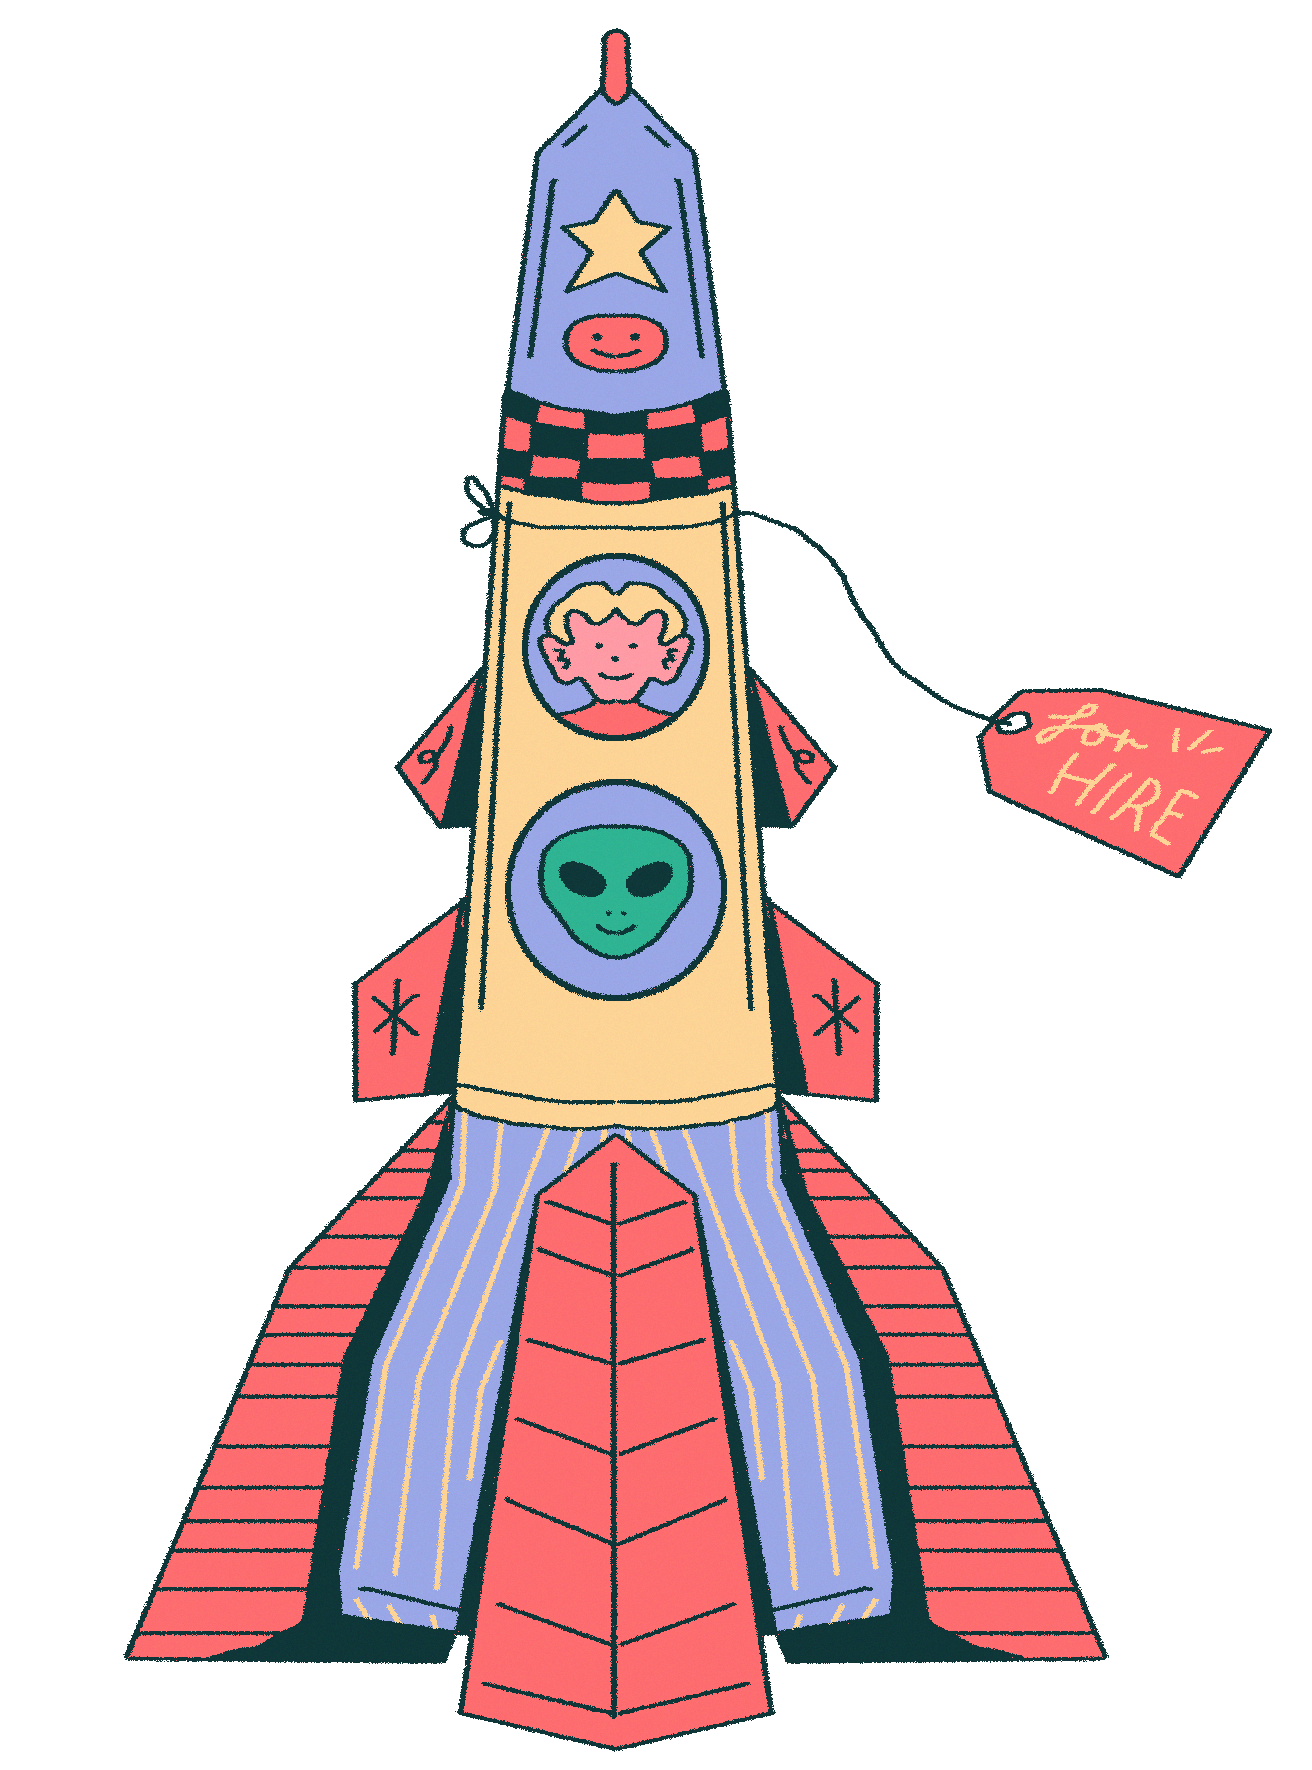 Illustration of a space ship